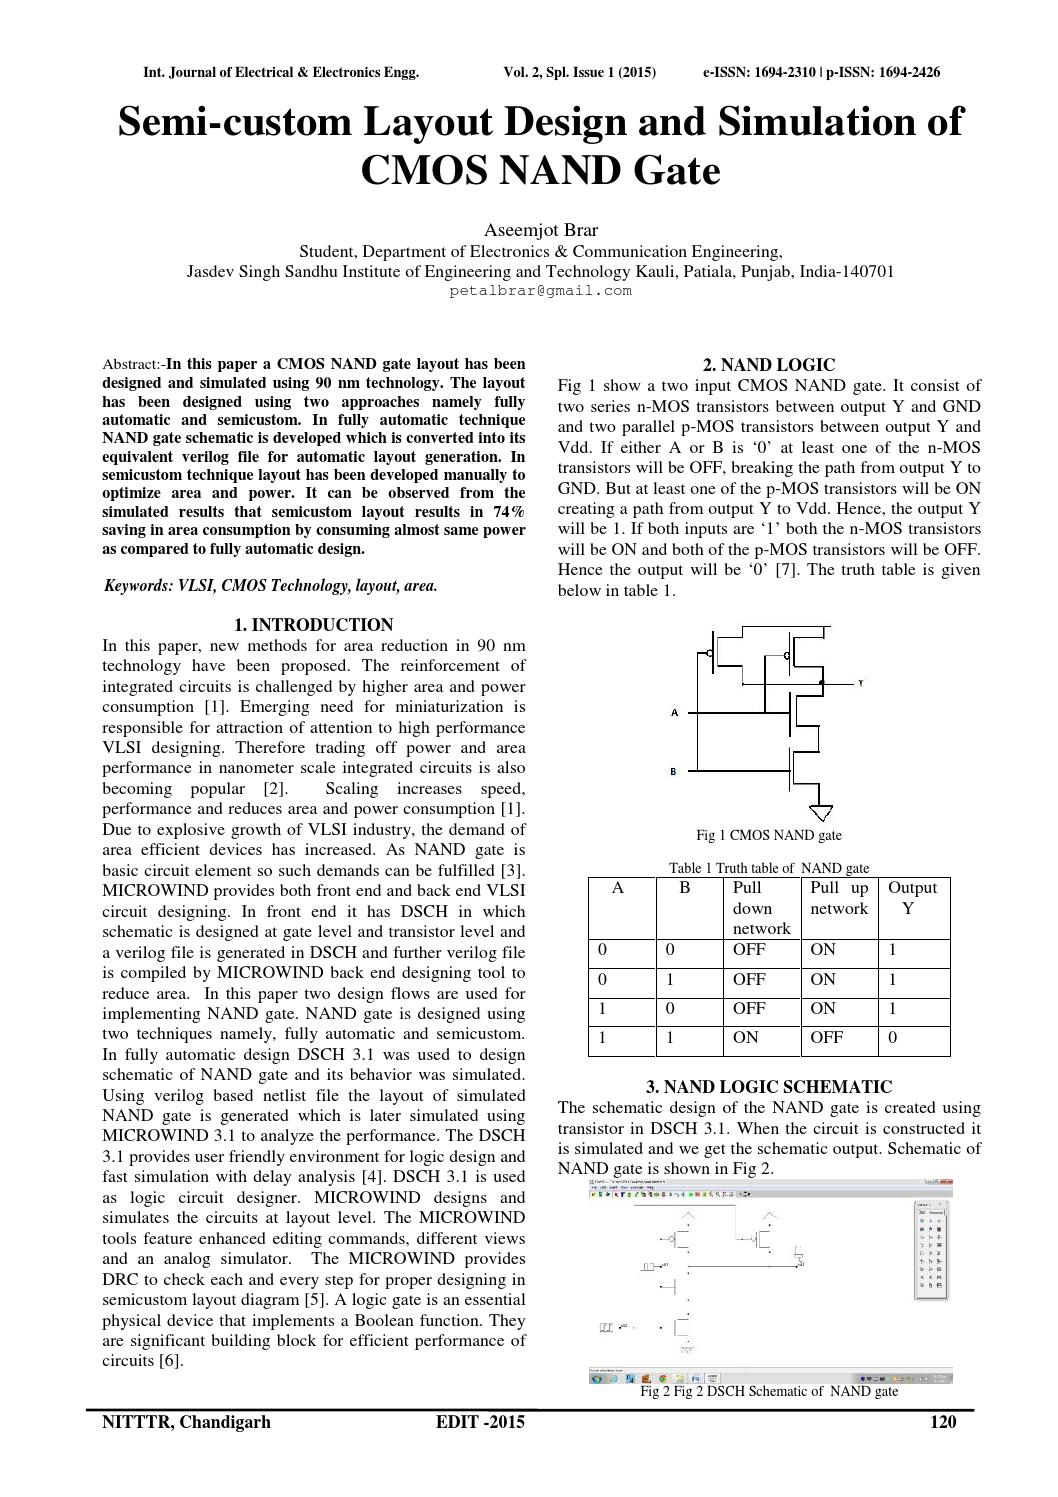 Semi Custom Layout Design And Simulation Of Cmos Nand Gate By Ijeee Microwind The Circuit Elixir Publications Issuu